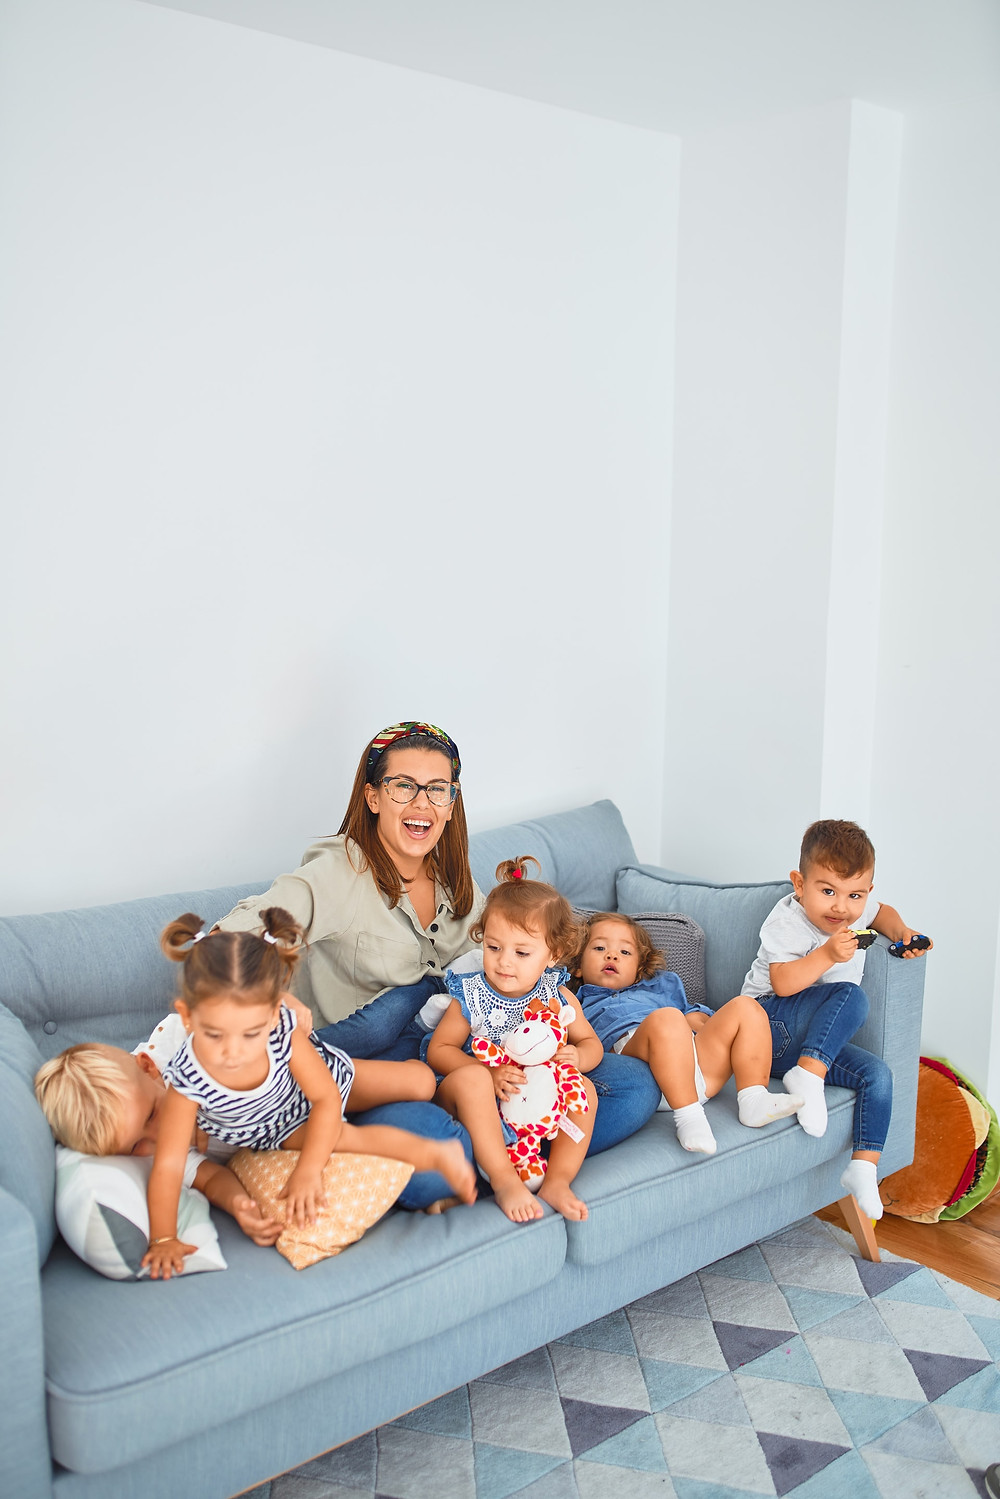 A woman with glasses sits on a light blue sofa with five toddlers around her. It seems there are three girls and two boys. It's possible that she is the children's mother, but it's also possible that she's not.